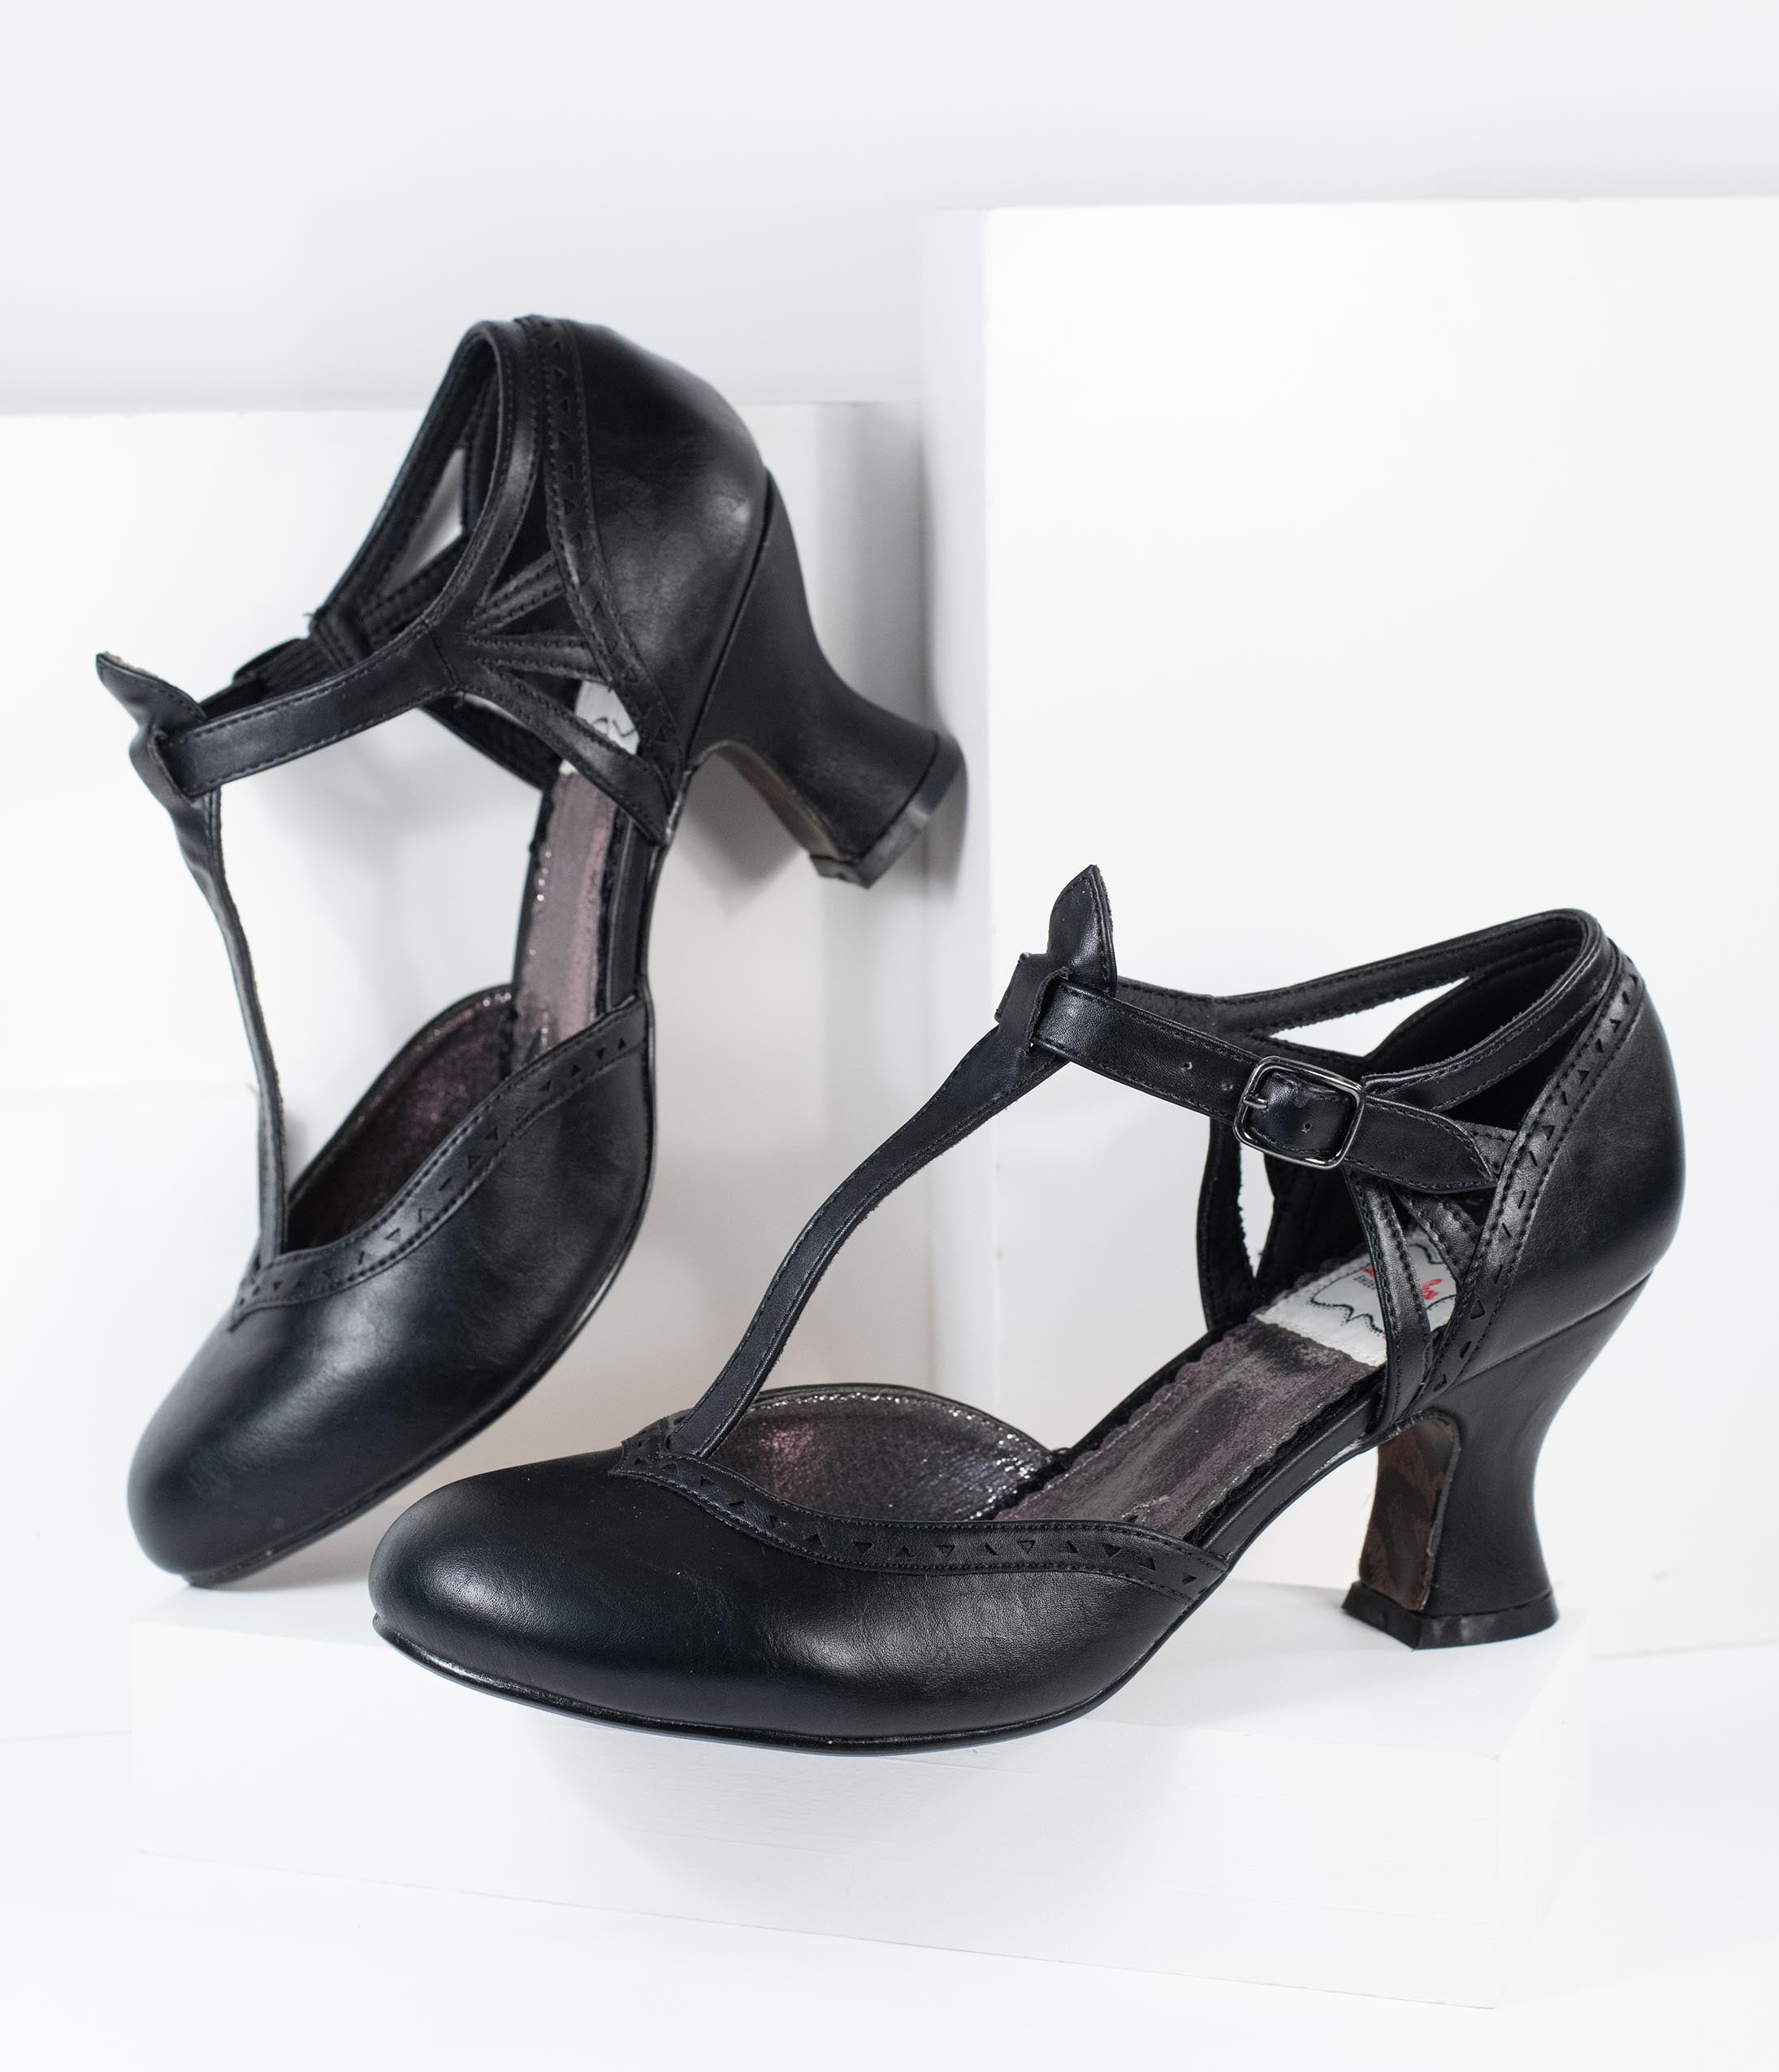 Women's 1920s Shoe Styles and History Bettie Page Black Leatherette Marie T-Strap Heels $88.00 AT vintagedancer.com